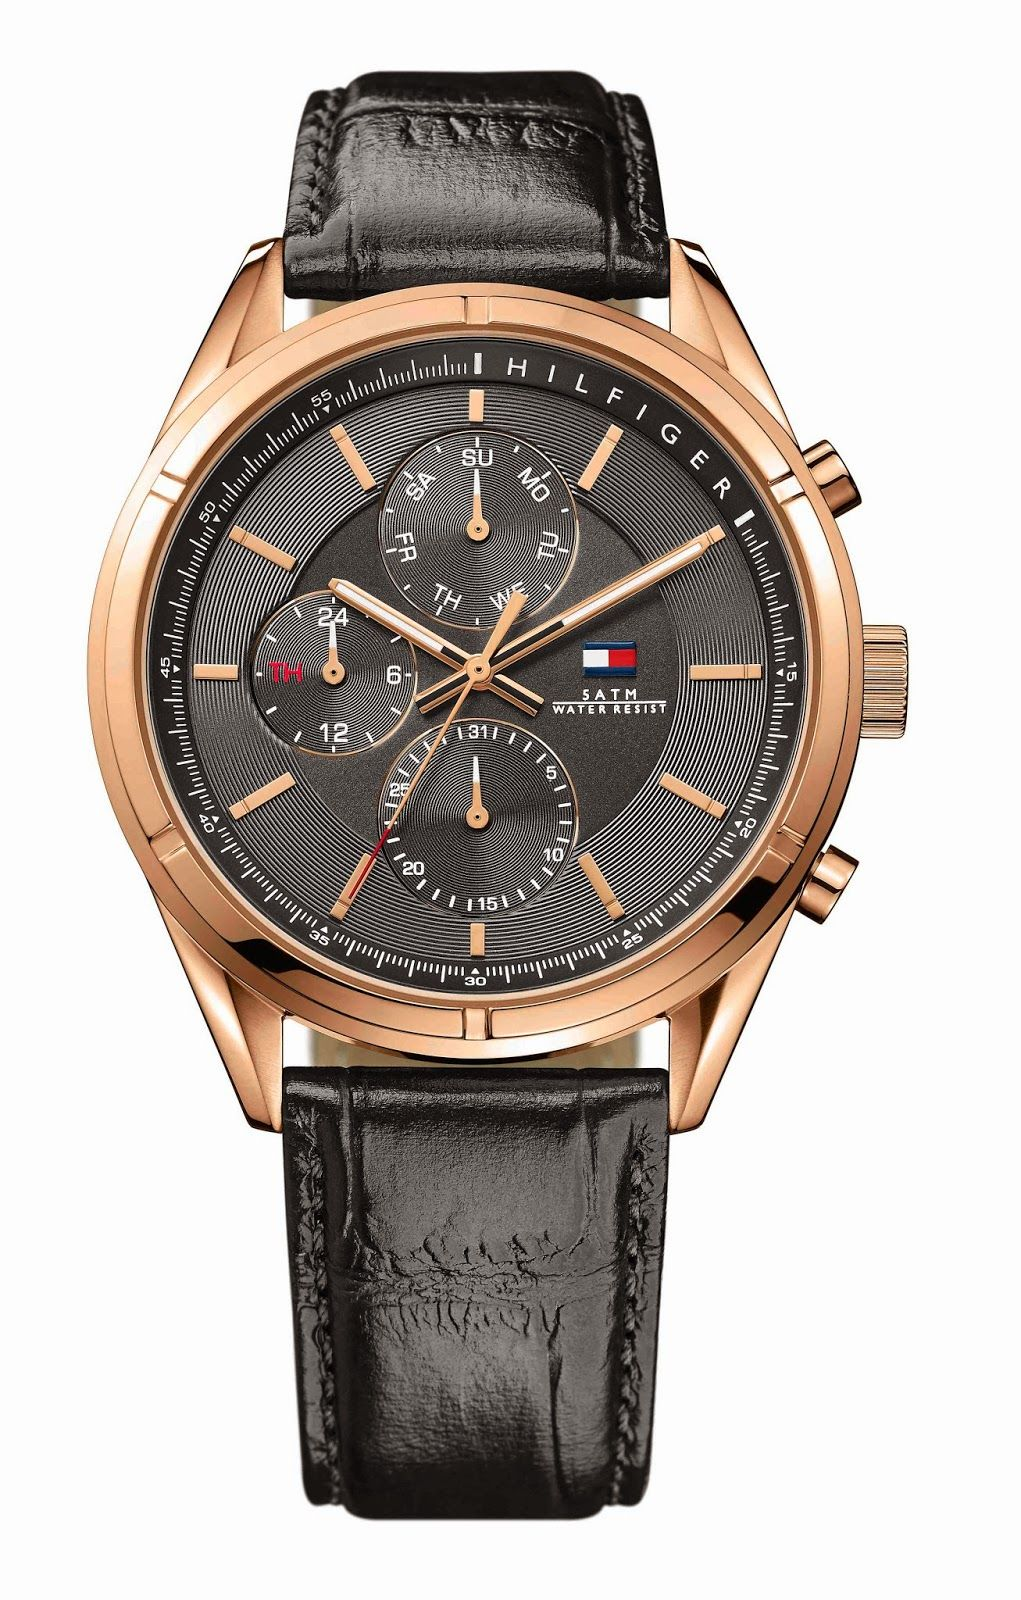 990c945923c ROSE-GOLD MENS WATCH HEADLINES TOMMY HILFIGER WATCHES NEW SS15 COLLECTION